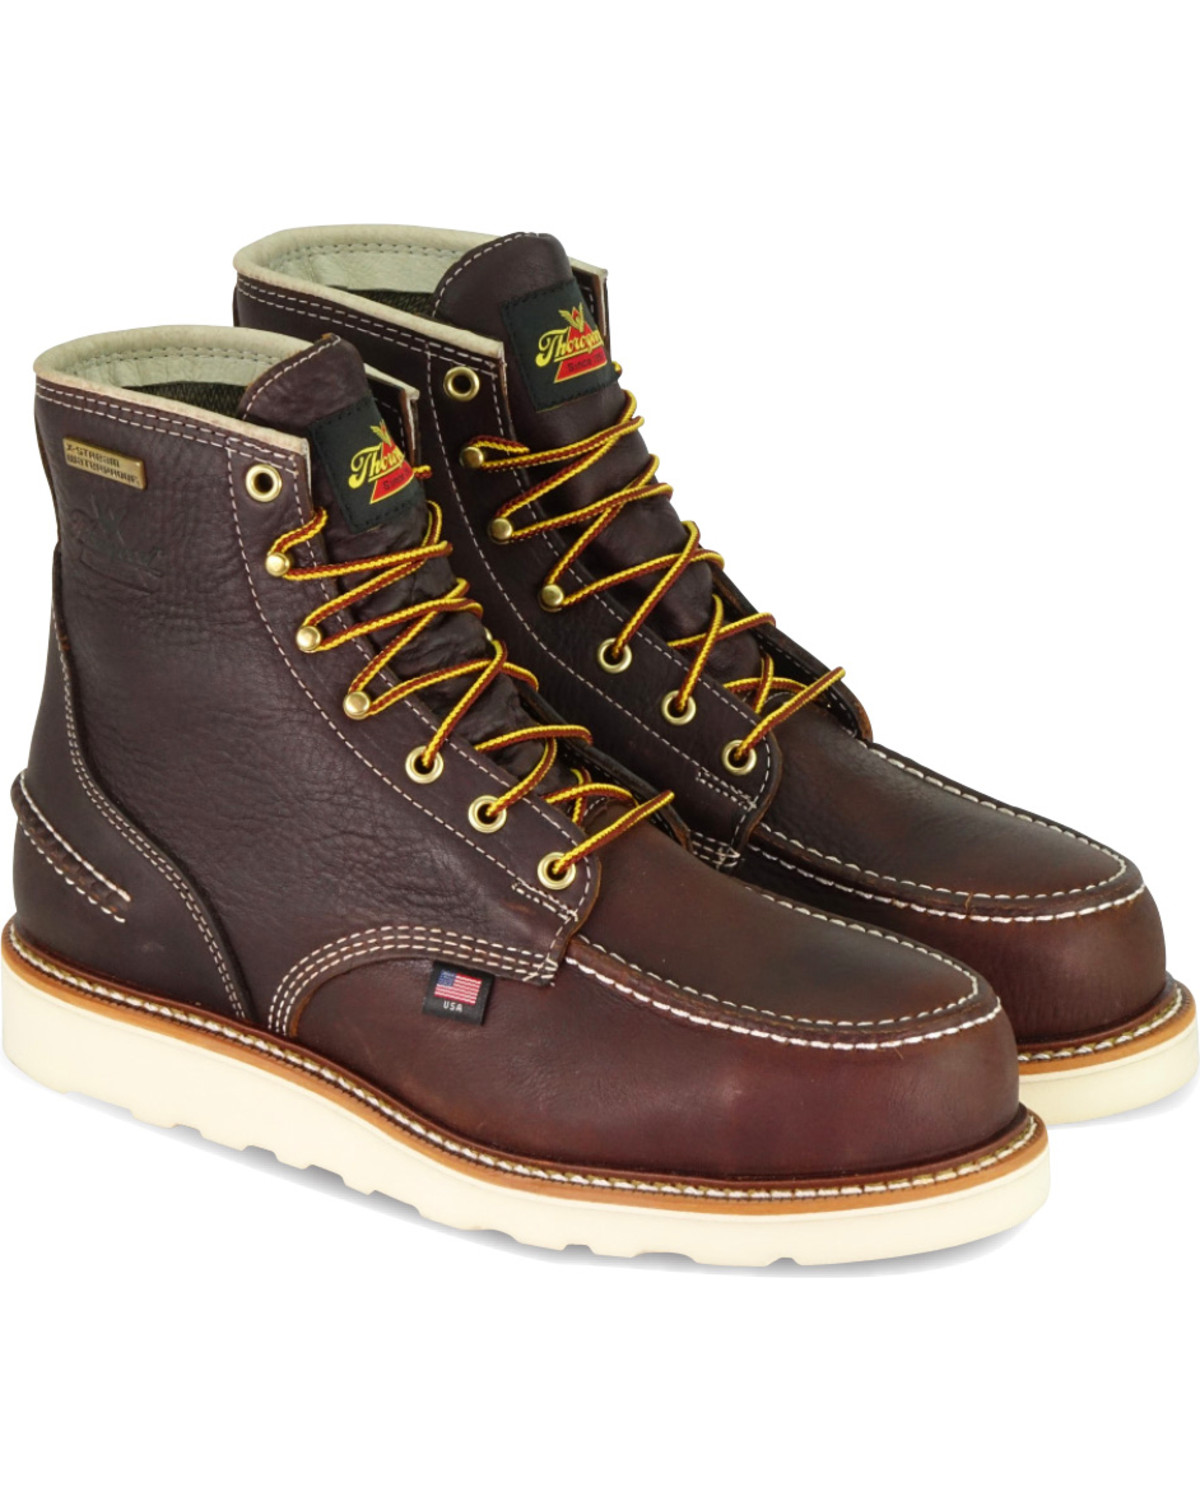 96cb9e78493 Thorogood Men's Brown 6